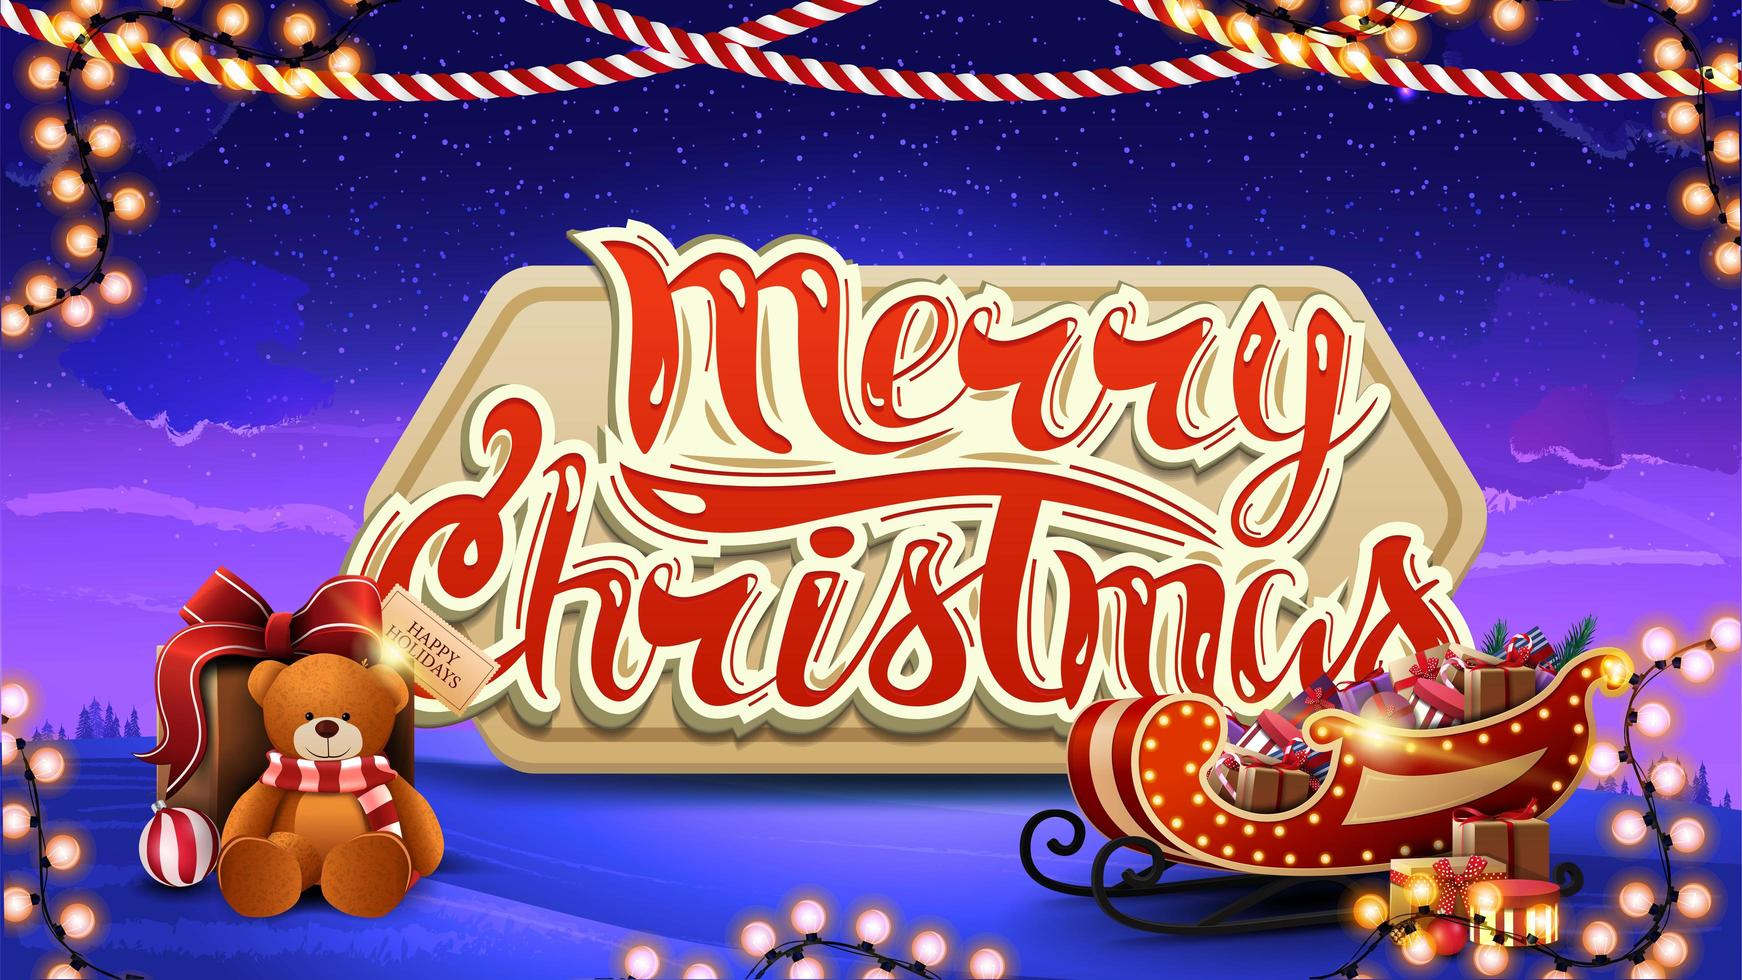 Merry christmas, blue postcard with volumetric large logo, winter landscape on background, and Santa Sleigh with presents vector